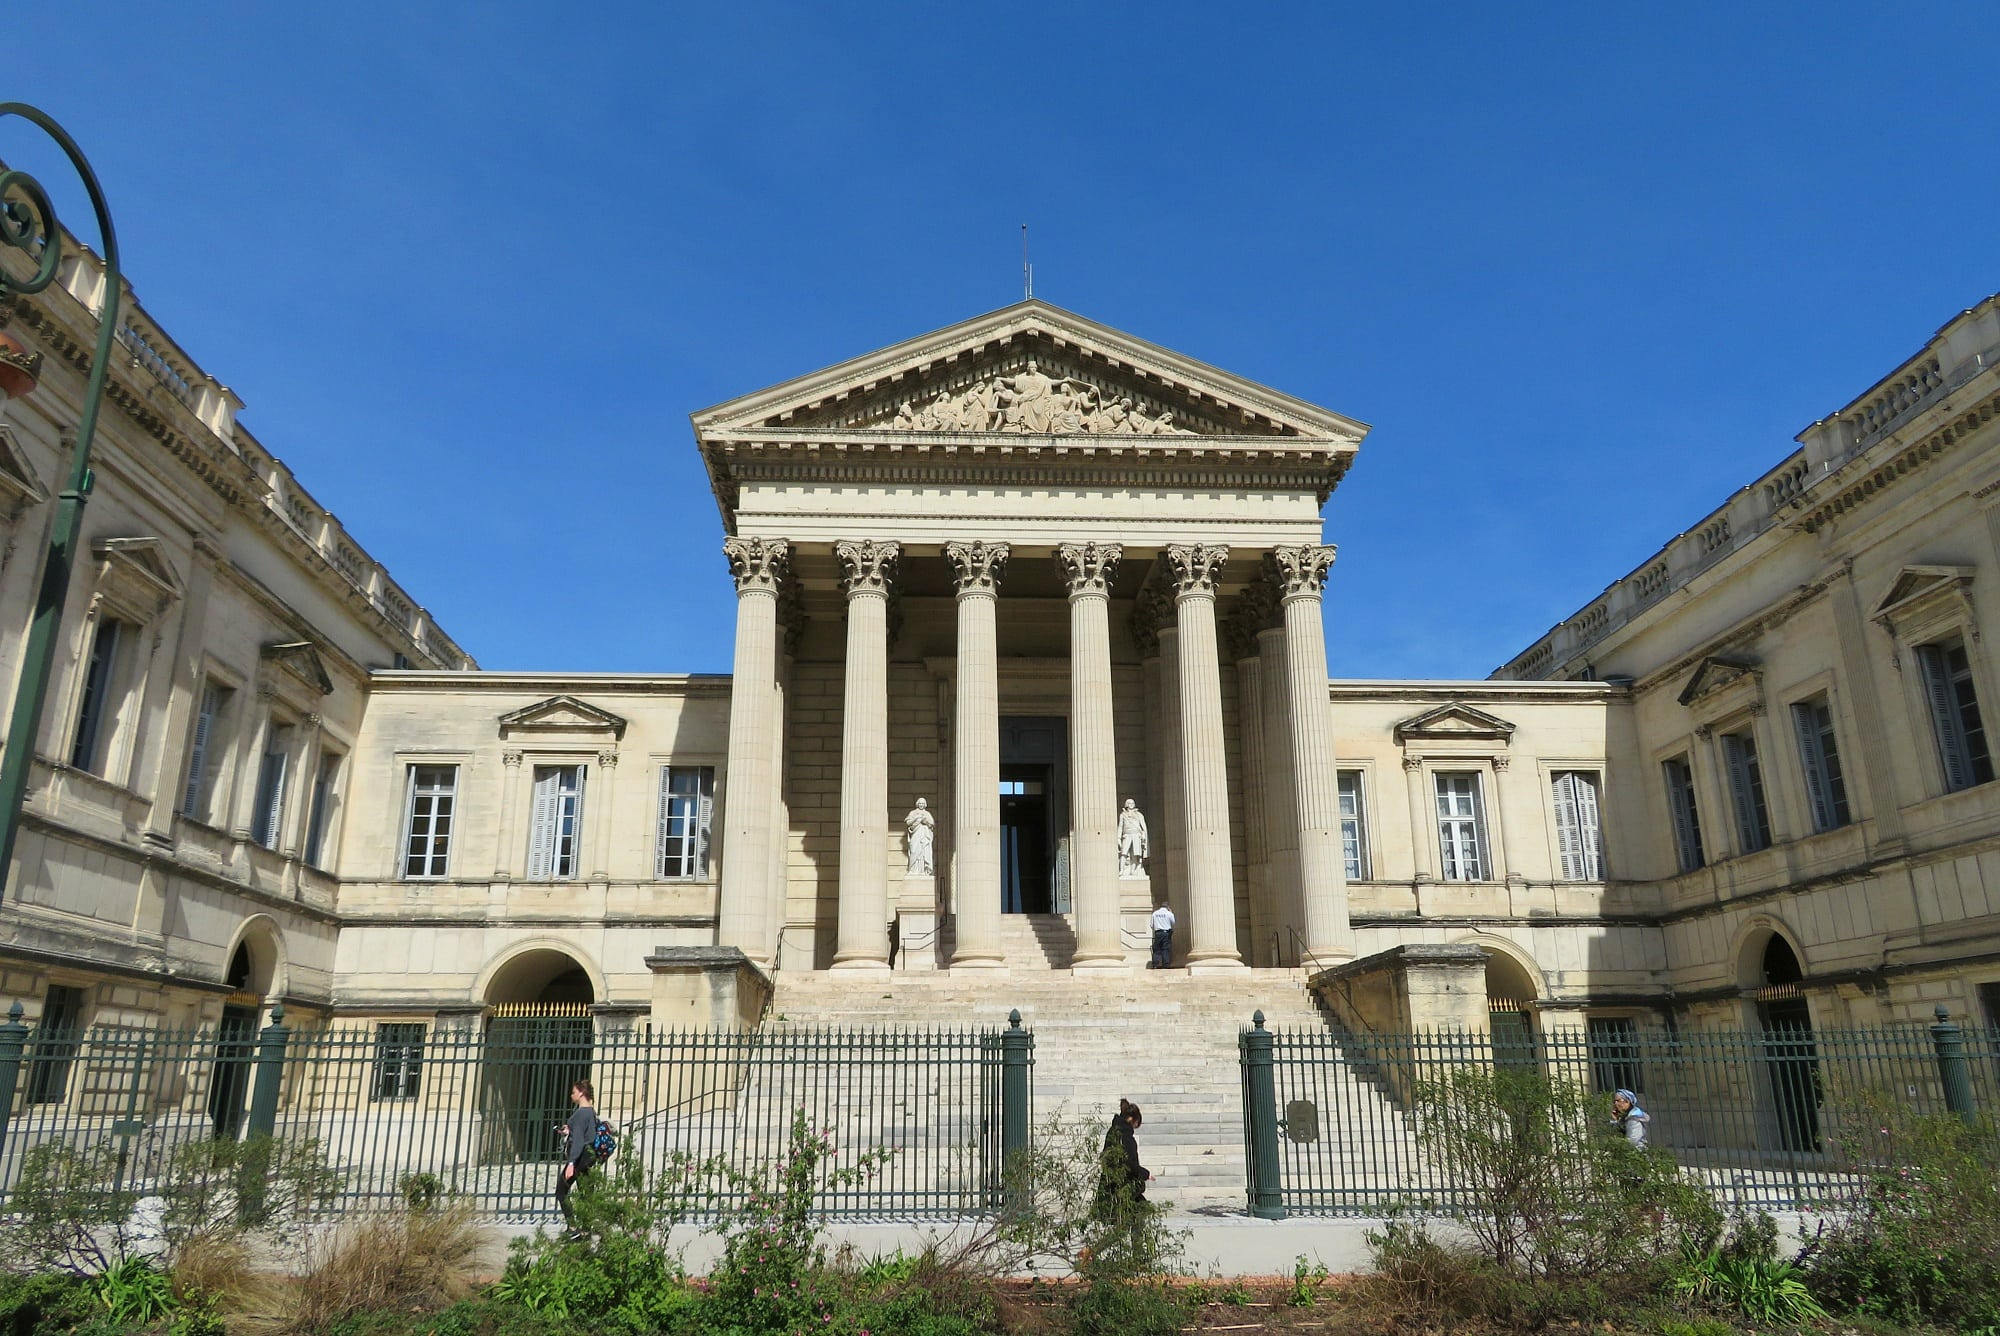 Montpellier's courthouse